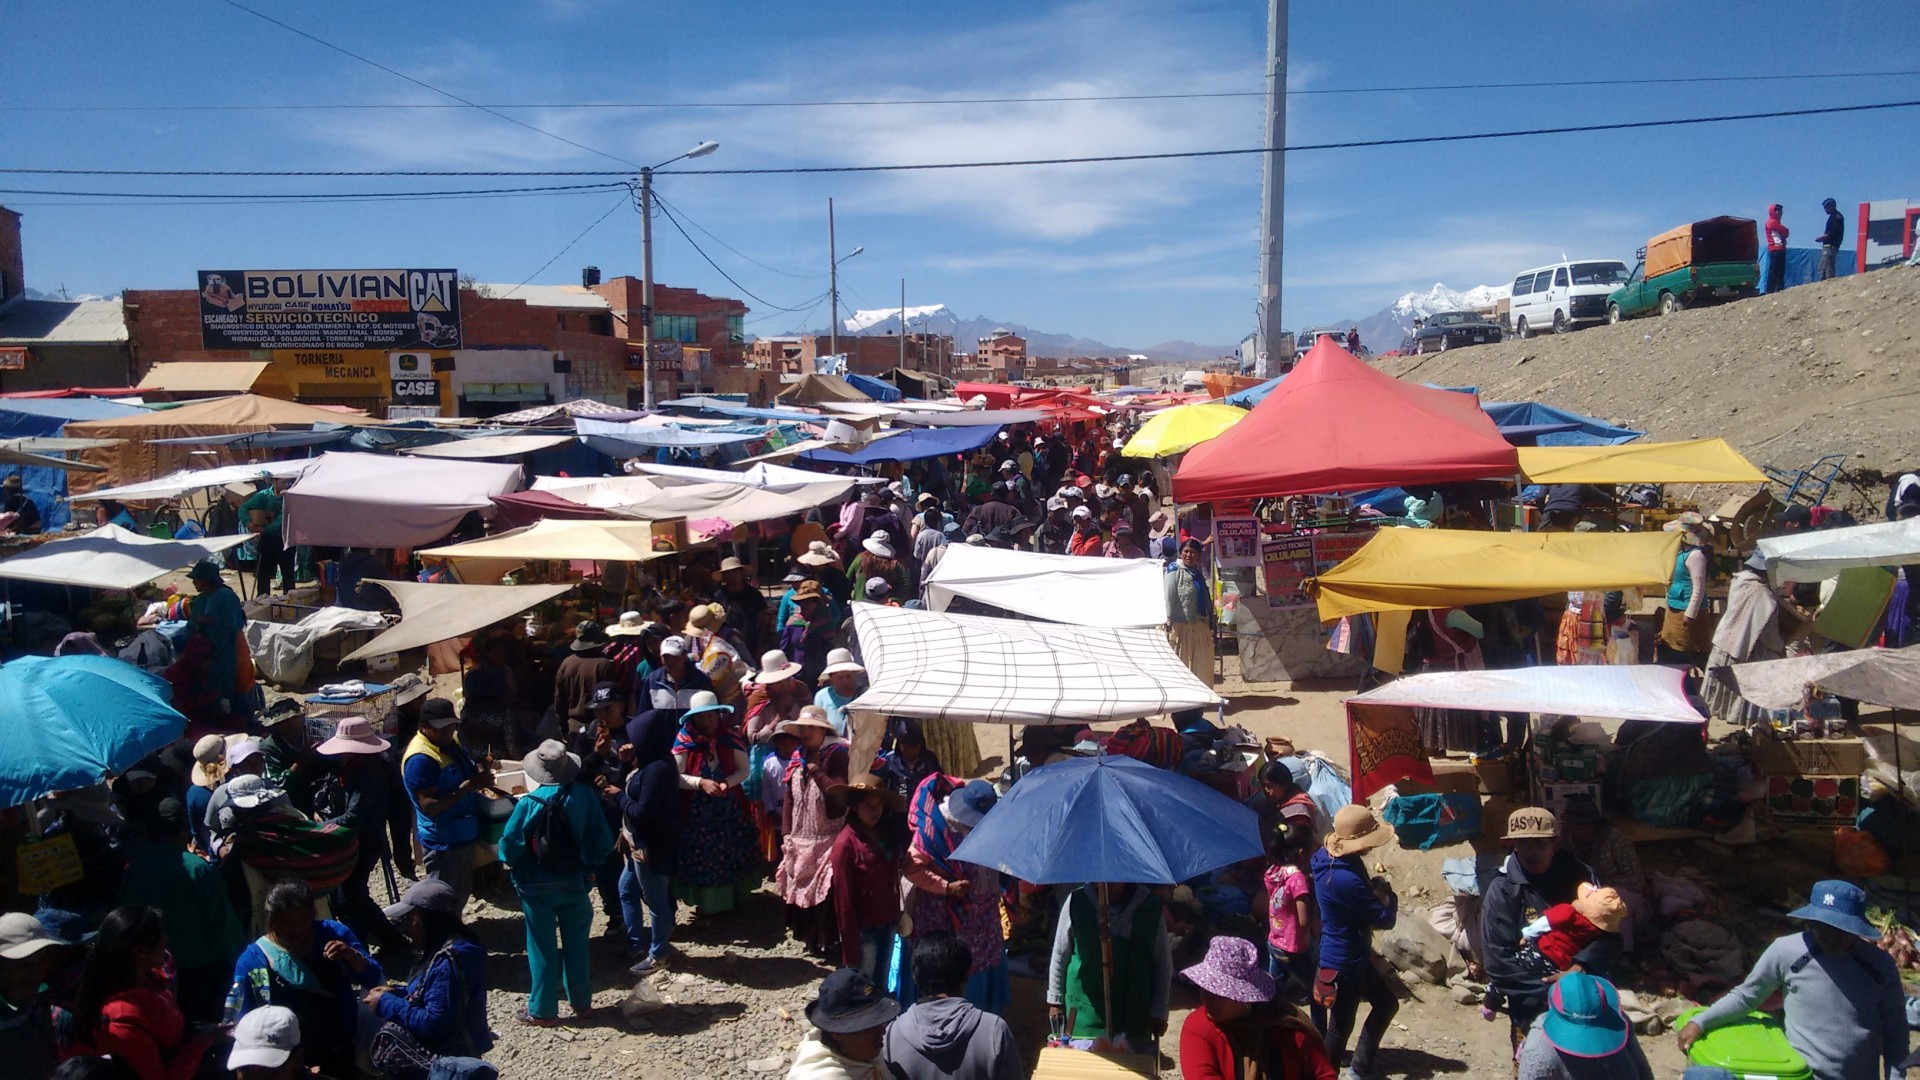 Markets in El Alto